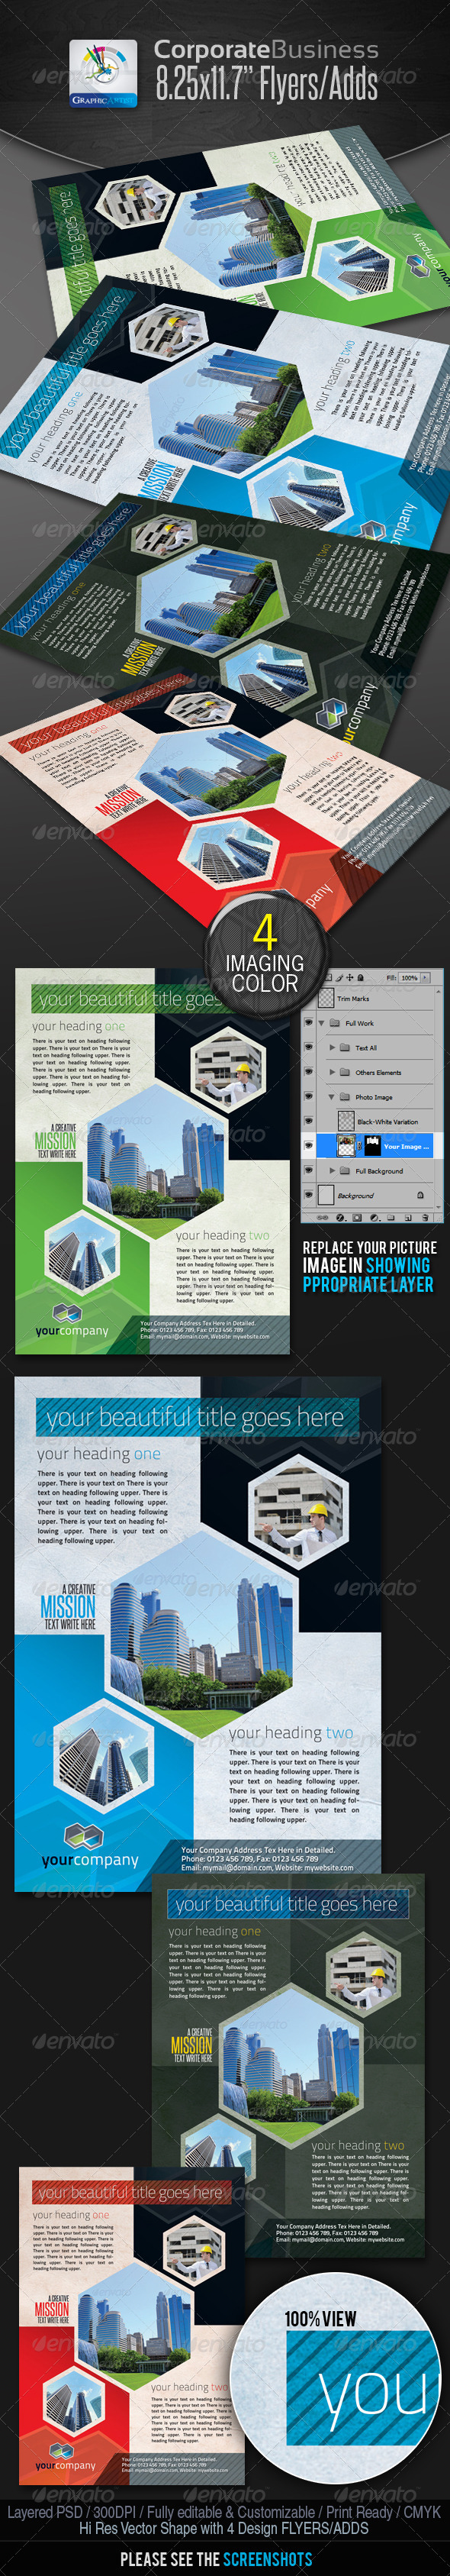 StylishCube Corporate Business Flyers/Ads - Corporate Flyers